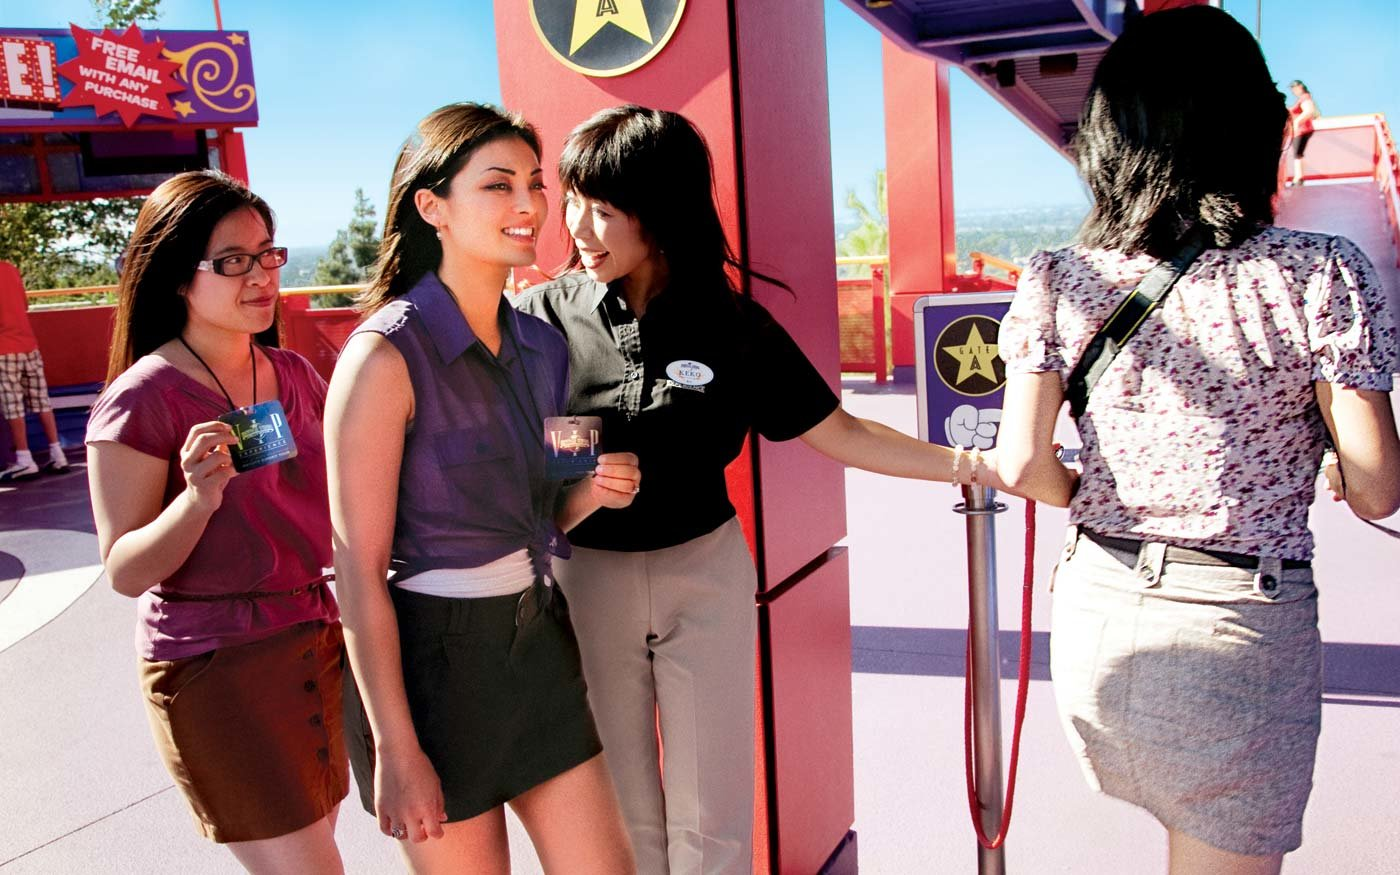 Universal Studios Hollywood ticketing